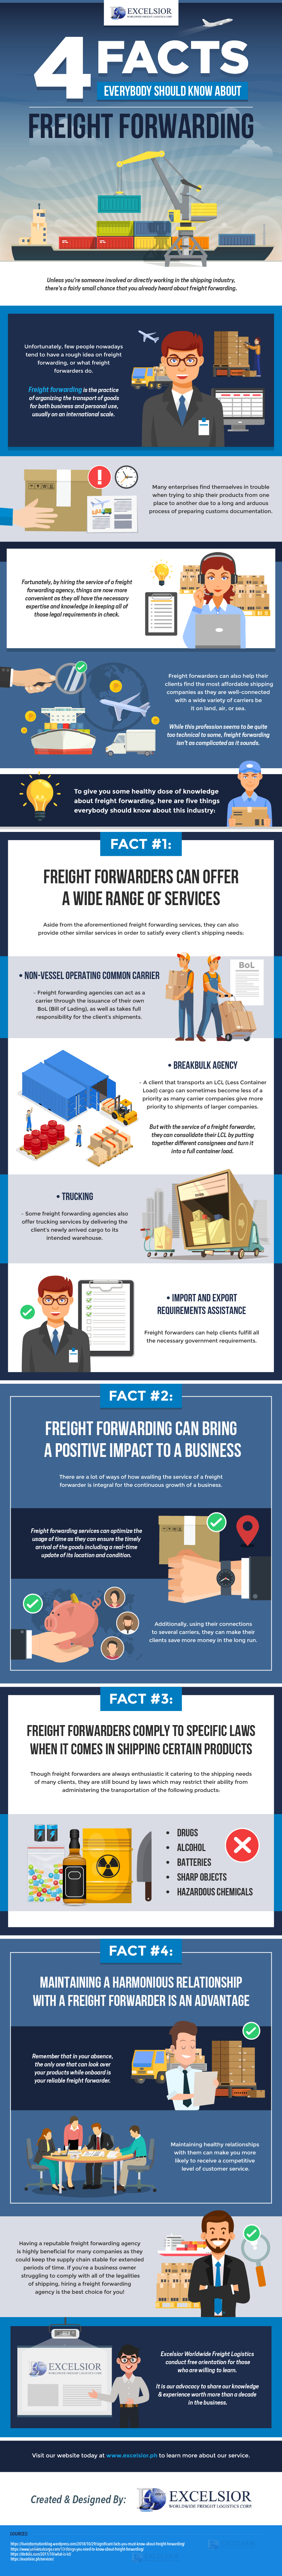 4 Facts Everybody Should Know About Freight Forwarding